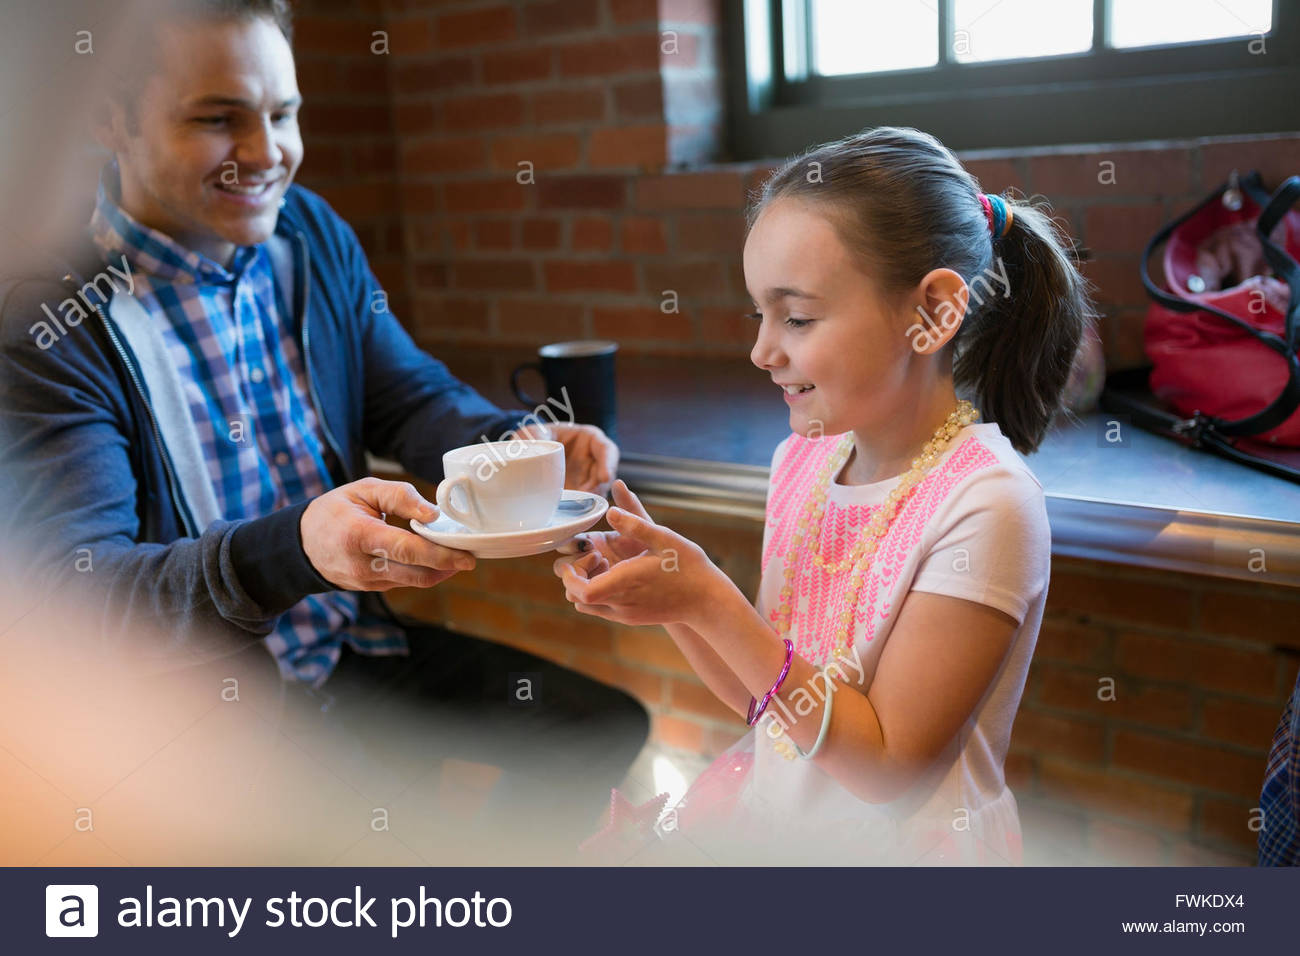 Father and daughter with cappuccino in coffee shop - Stock Image